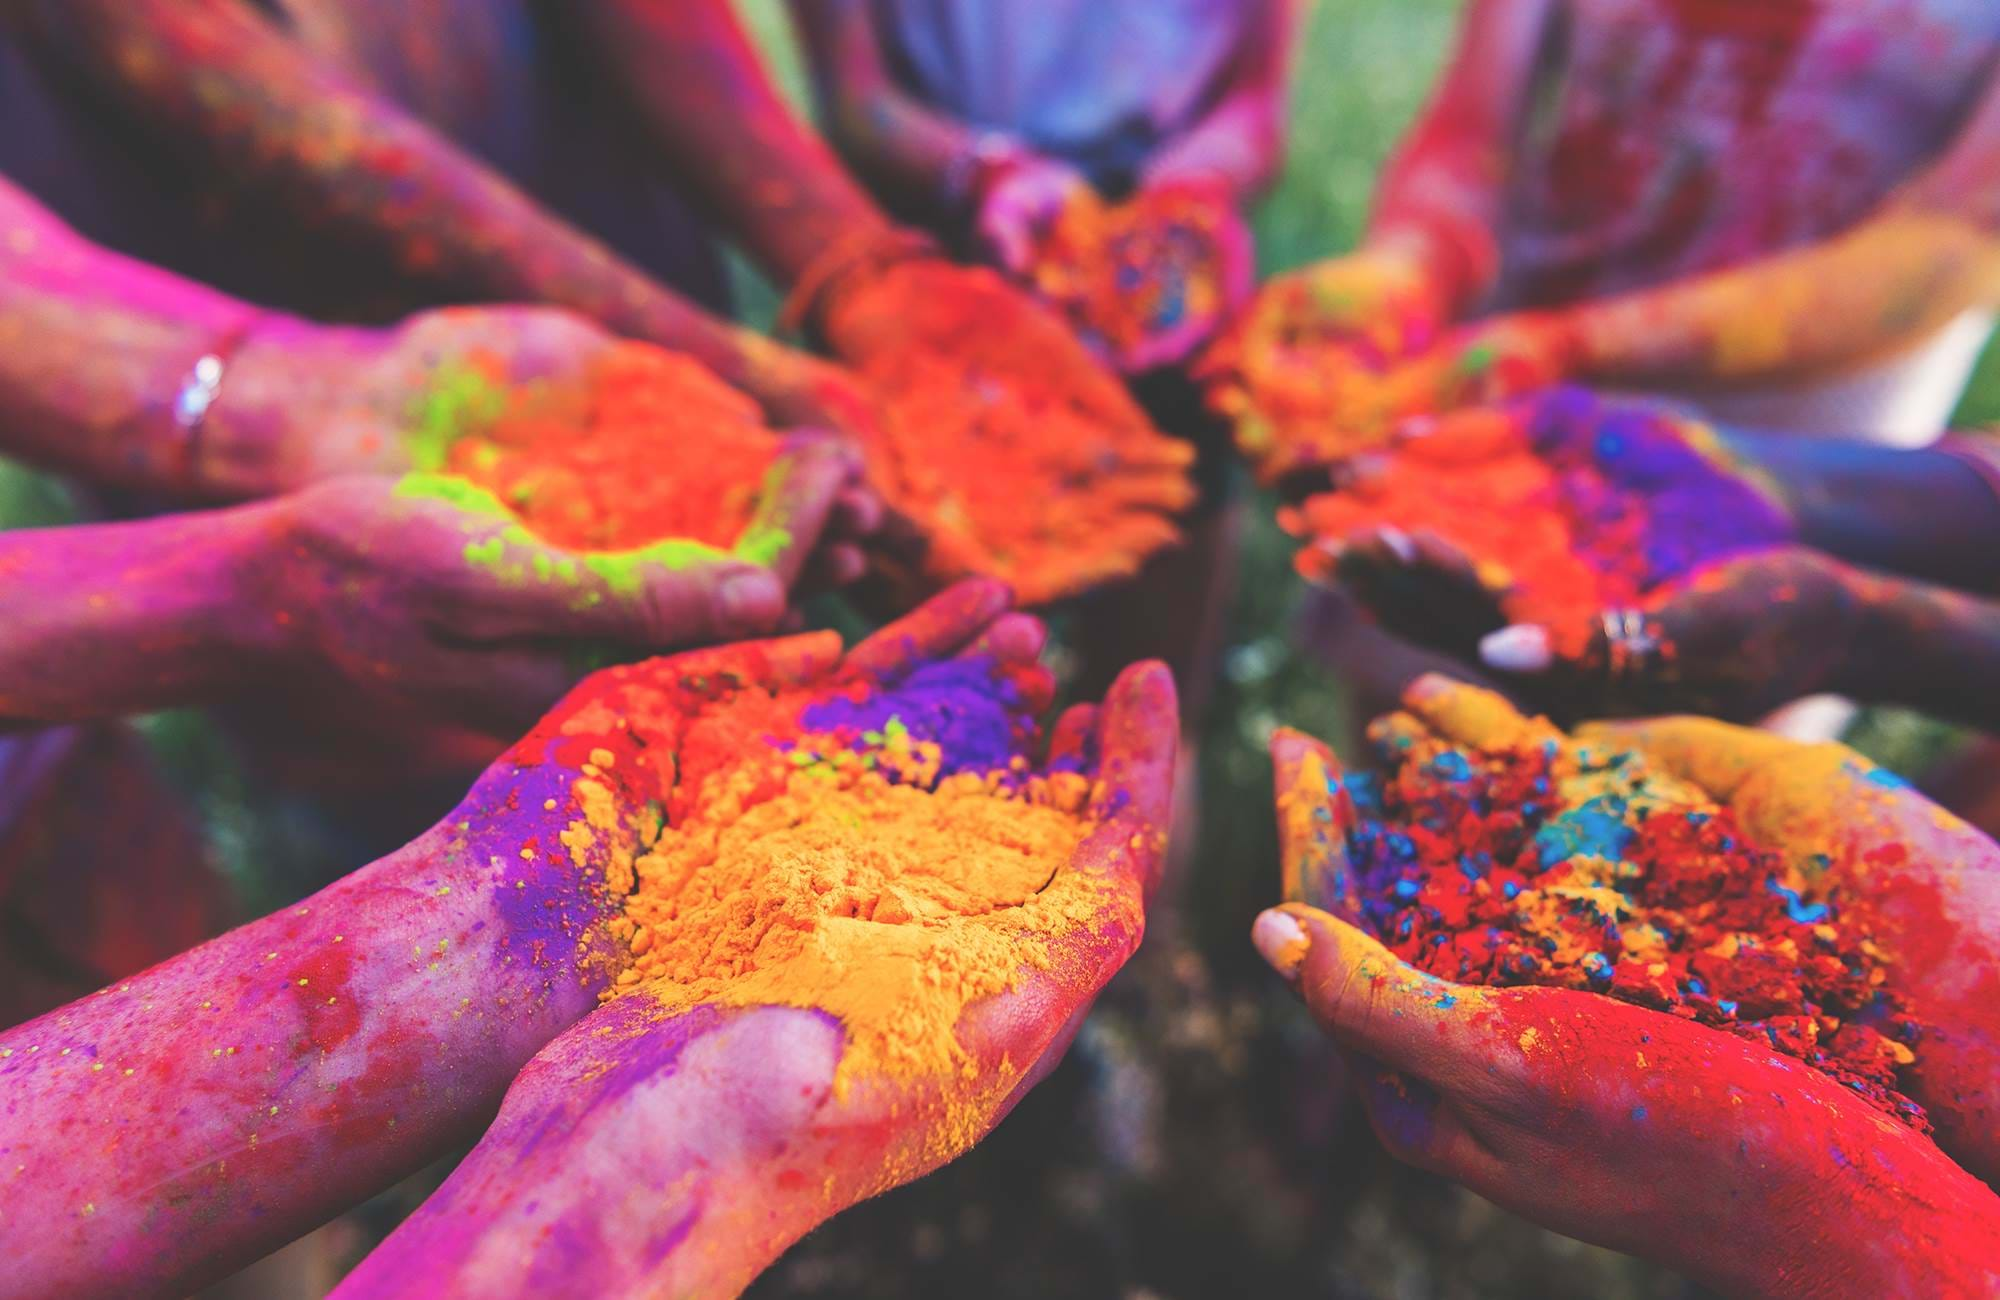 india-holi-festival-hands-holding-colors